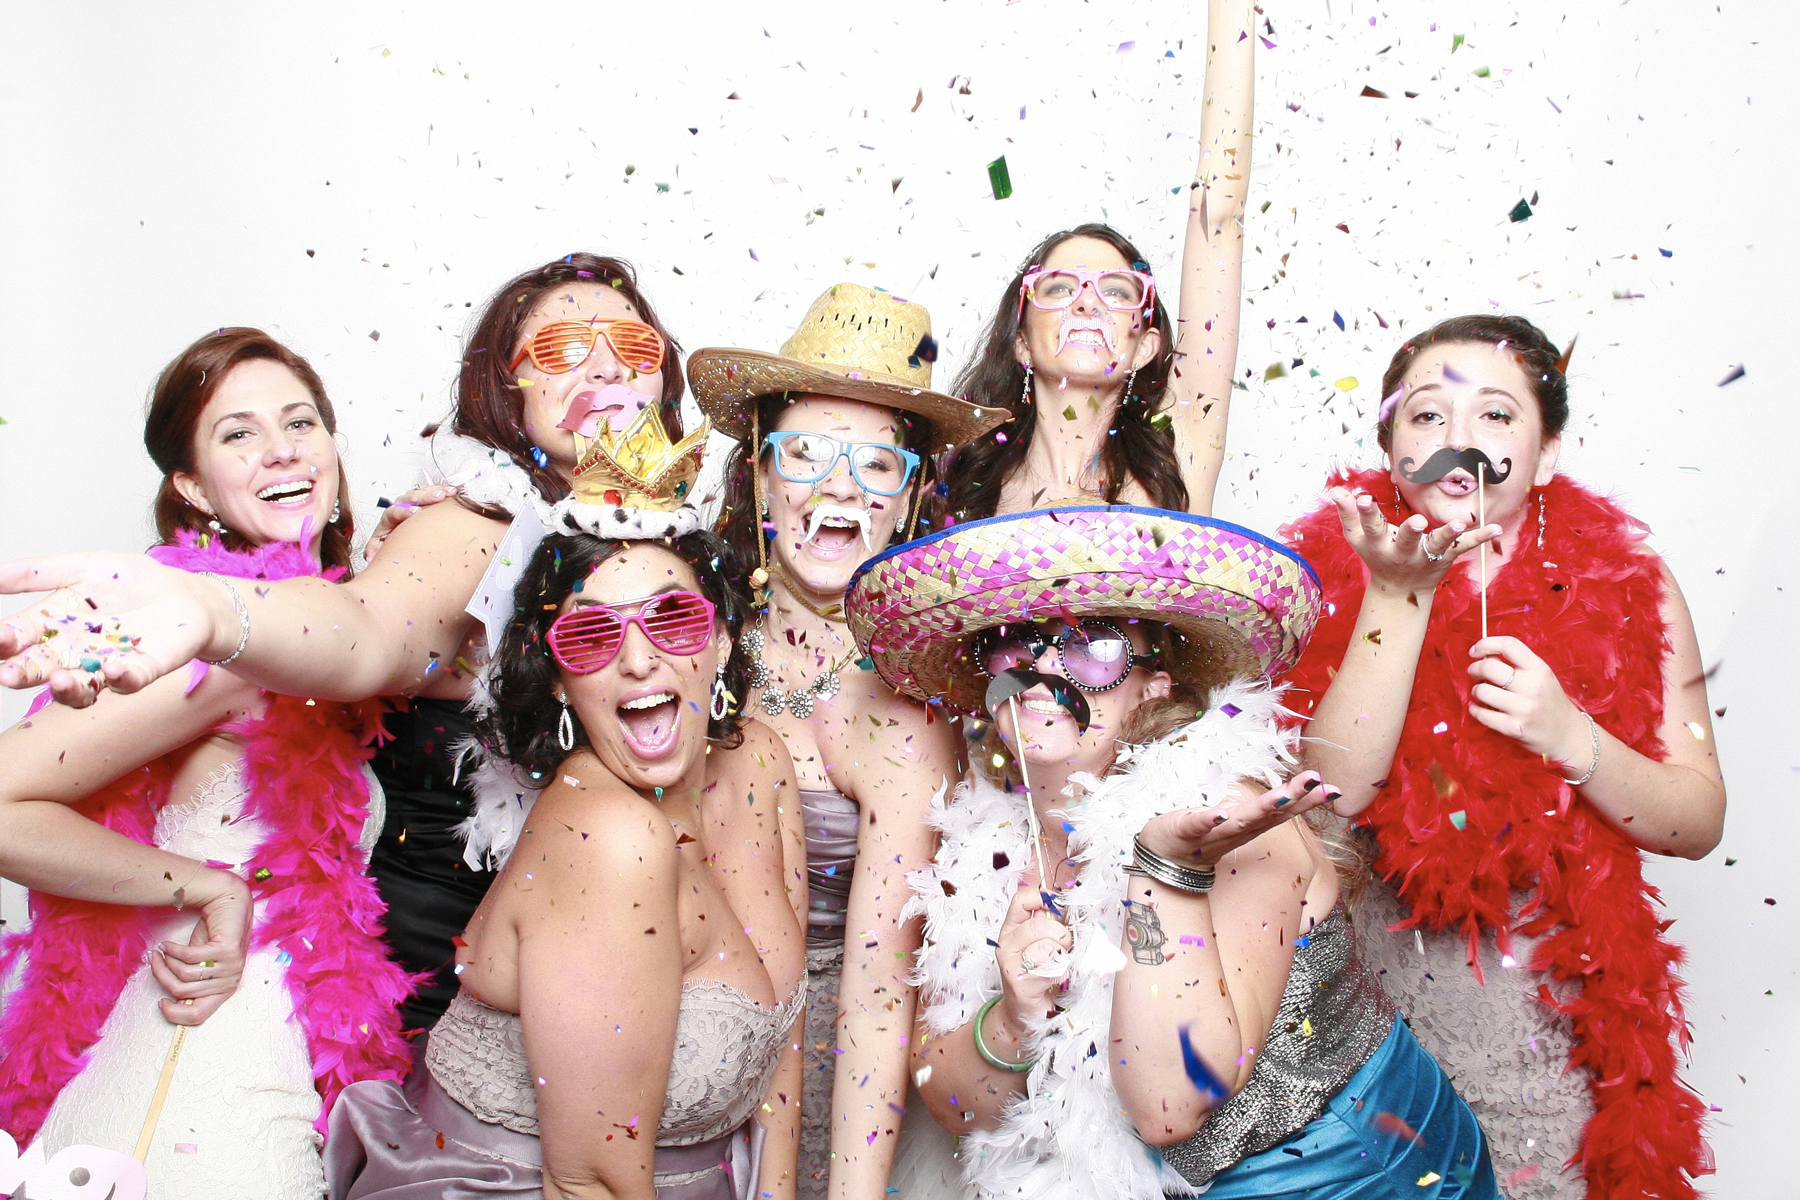 Bridesmaids in new york photo booth using confetti